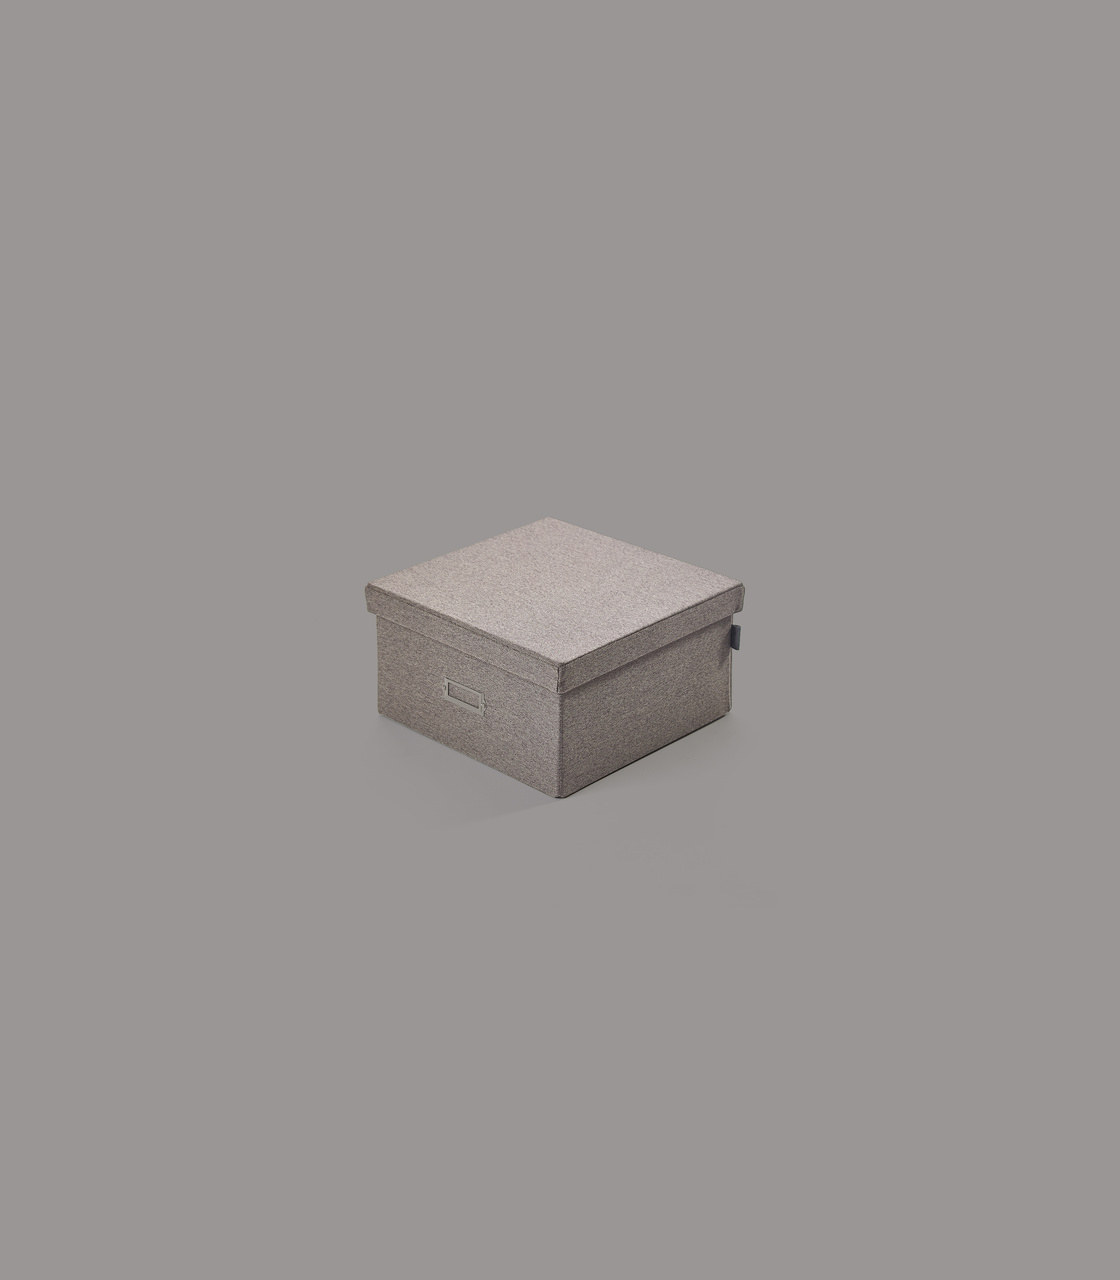 Stax — Small Box with Lid